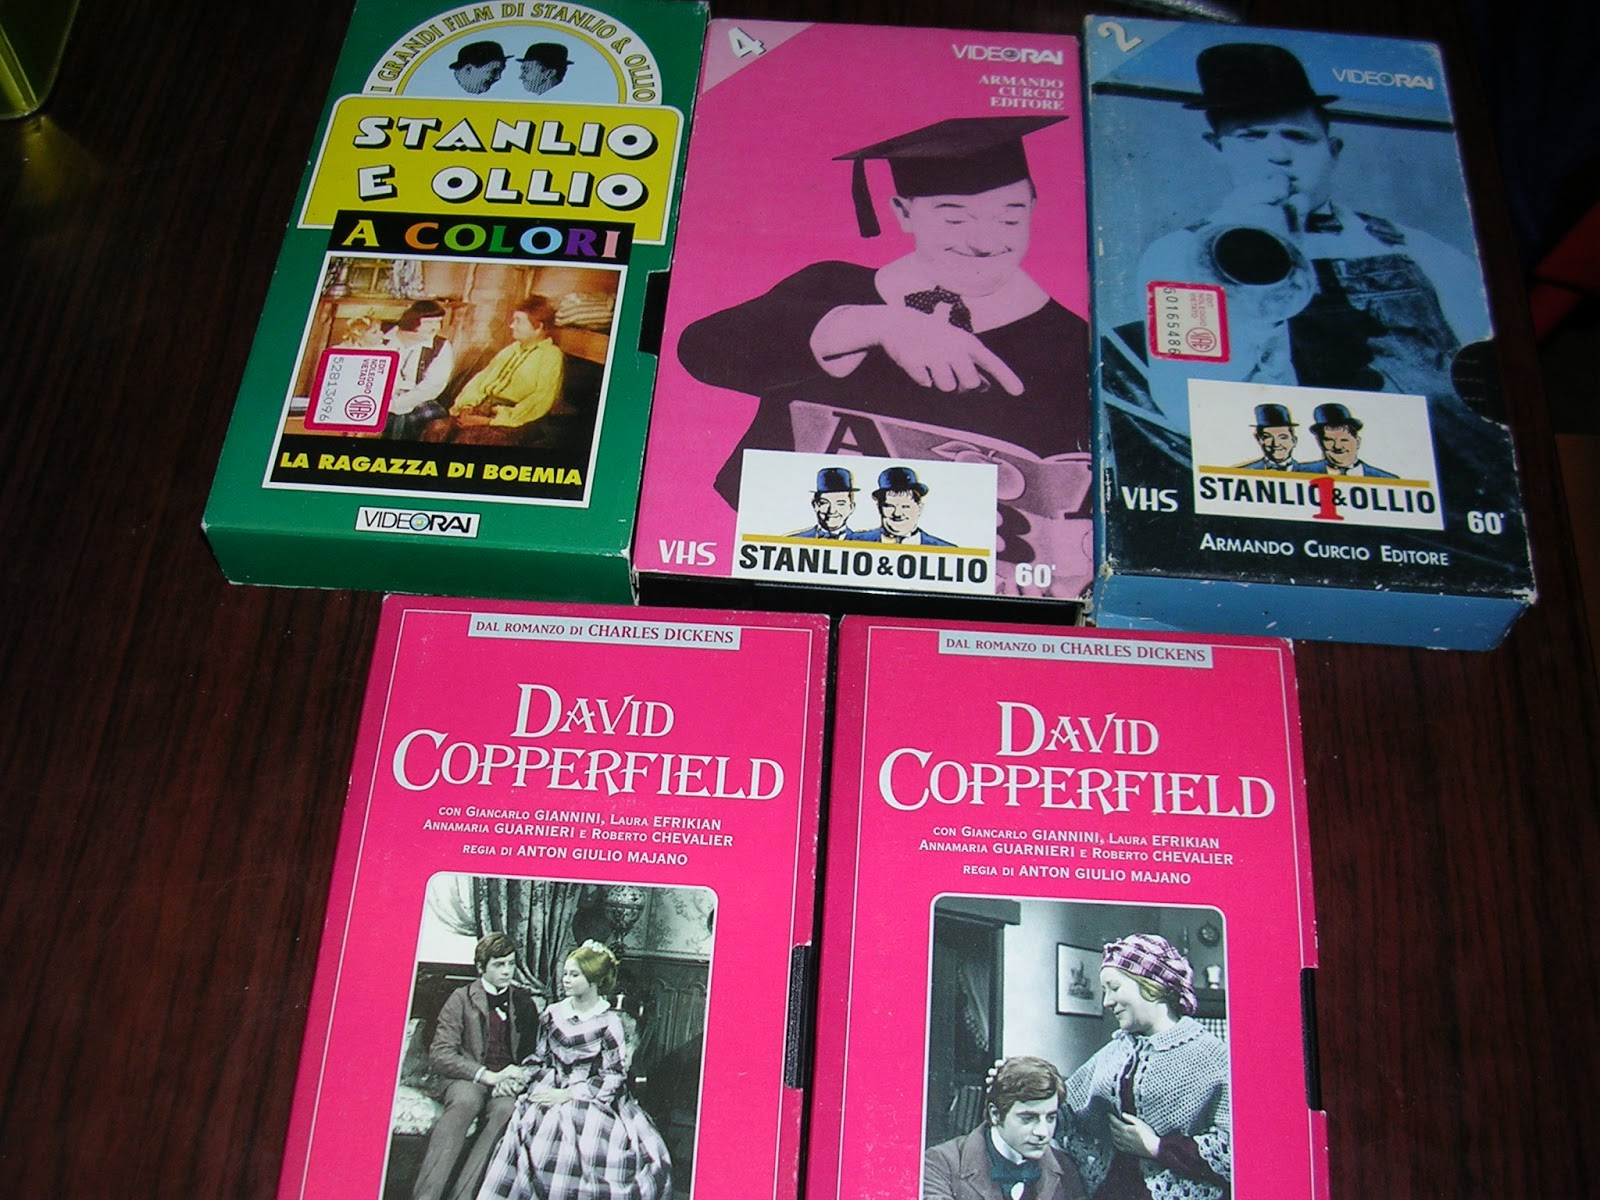 David Copperfield Libro Vuoi Un Libro Stanlio And Ollio David Copperfield Vhs